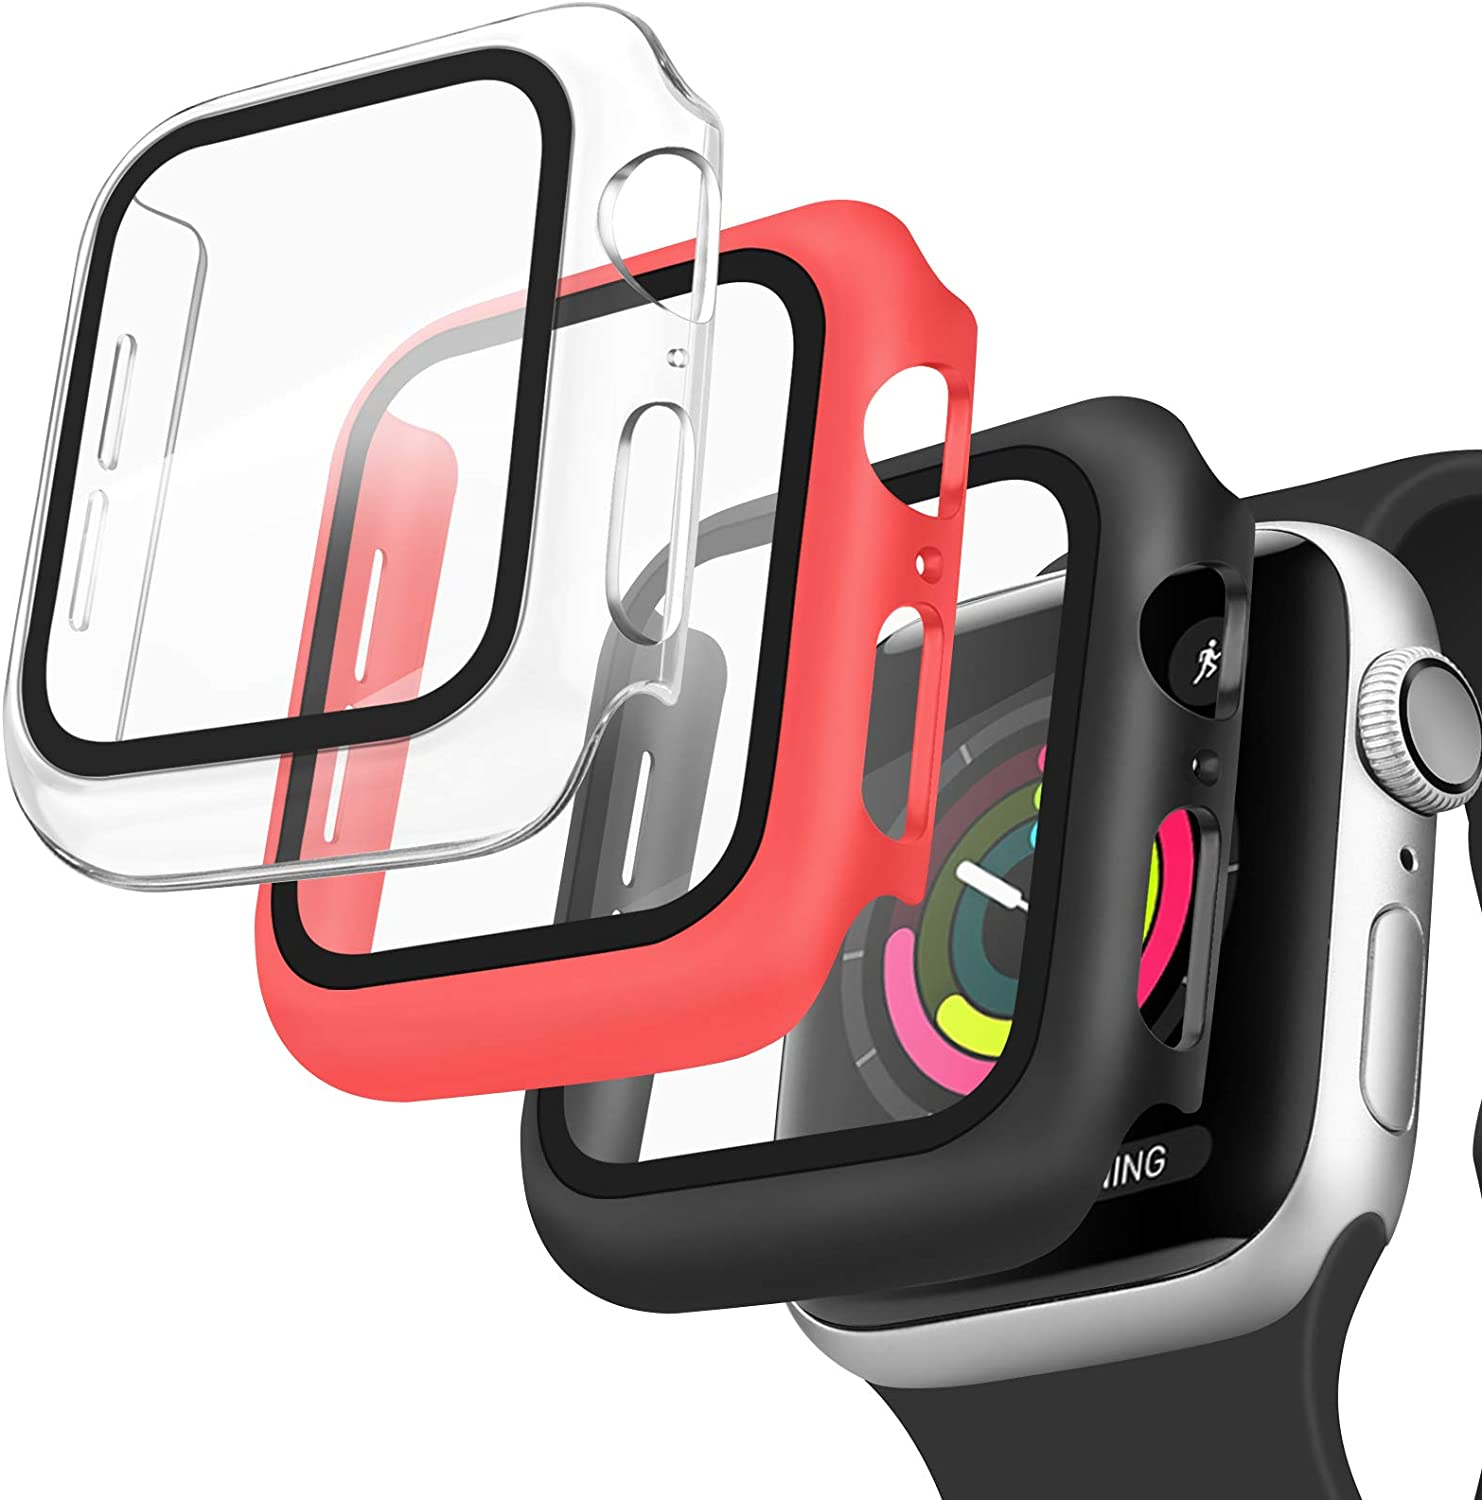 [3 Pack] Oumida 42mm 38mm Case Compatible with Apple Watch Series 3 2 1 for Women Men, iWatch Cases 42mm 38mm Hard Cover with Tempered Glass Screen Protector (Clear, Red, Black, 42mm)